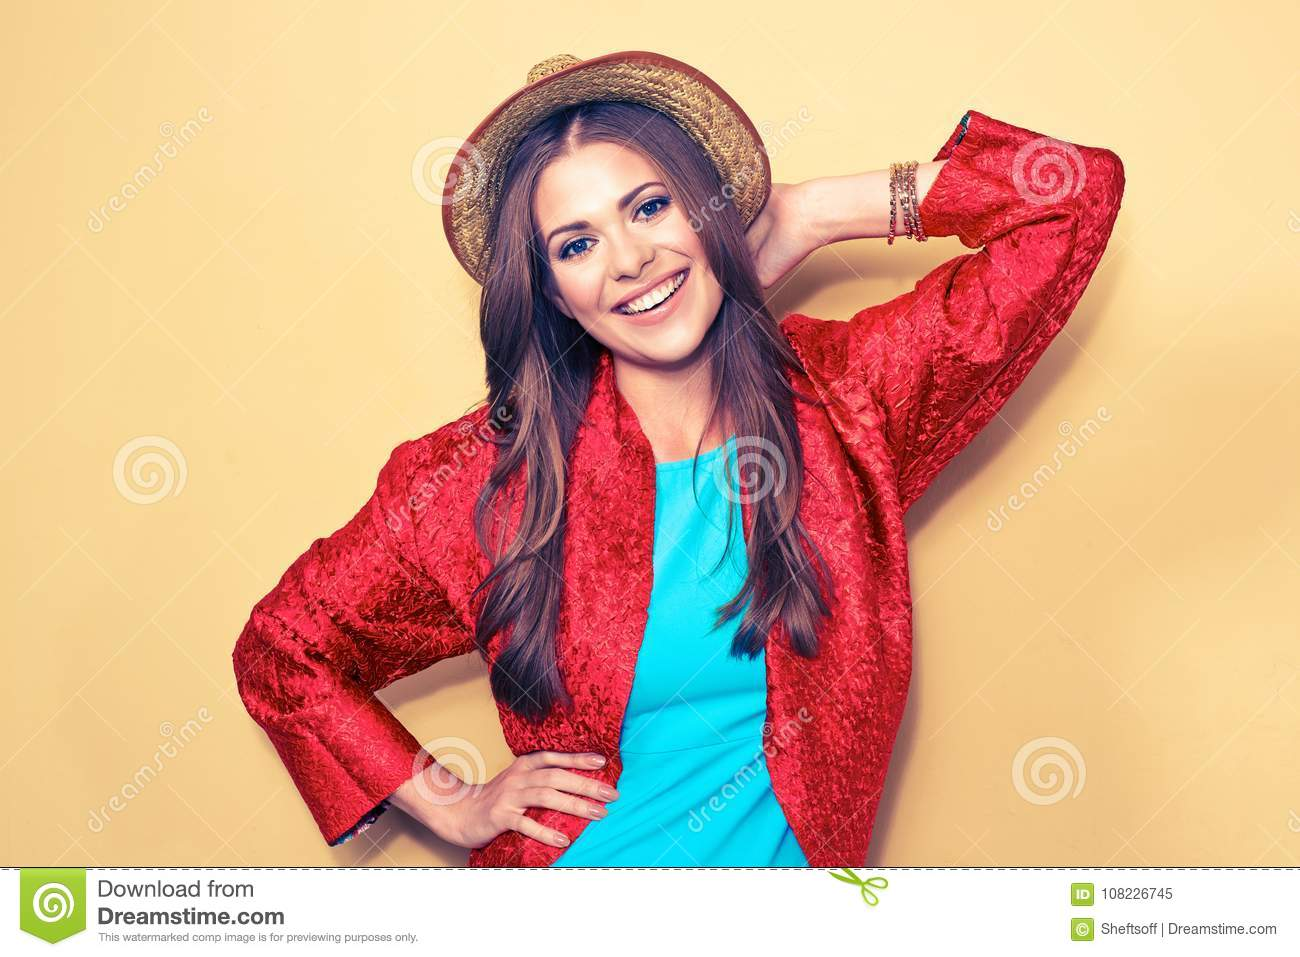 Happy young female model. smiling woman fashion style portrait.